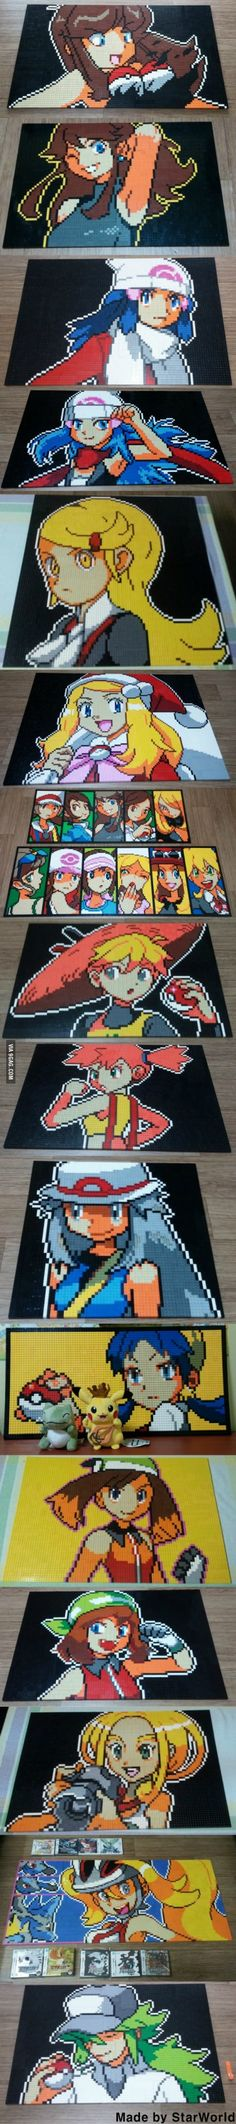 Pokemon Dot Images Made From Lego!<<<<Seeing other people who have read the manga makes me happy